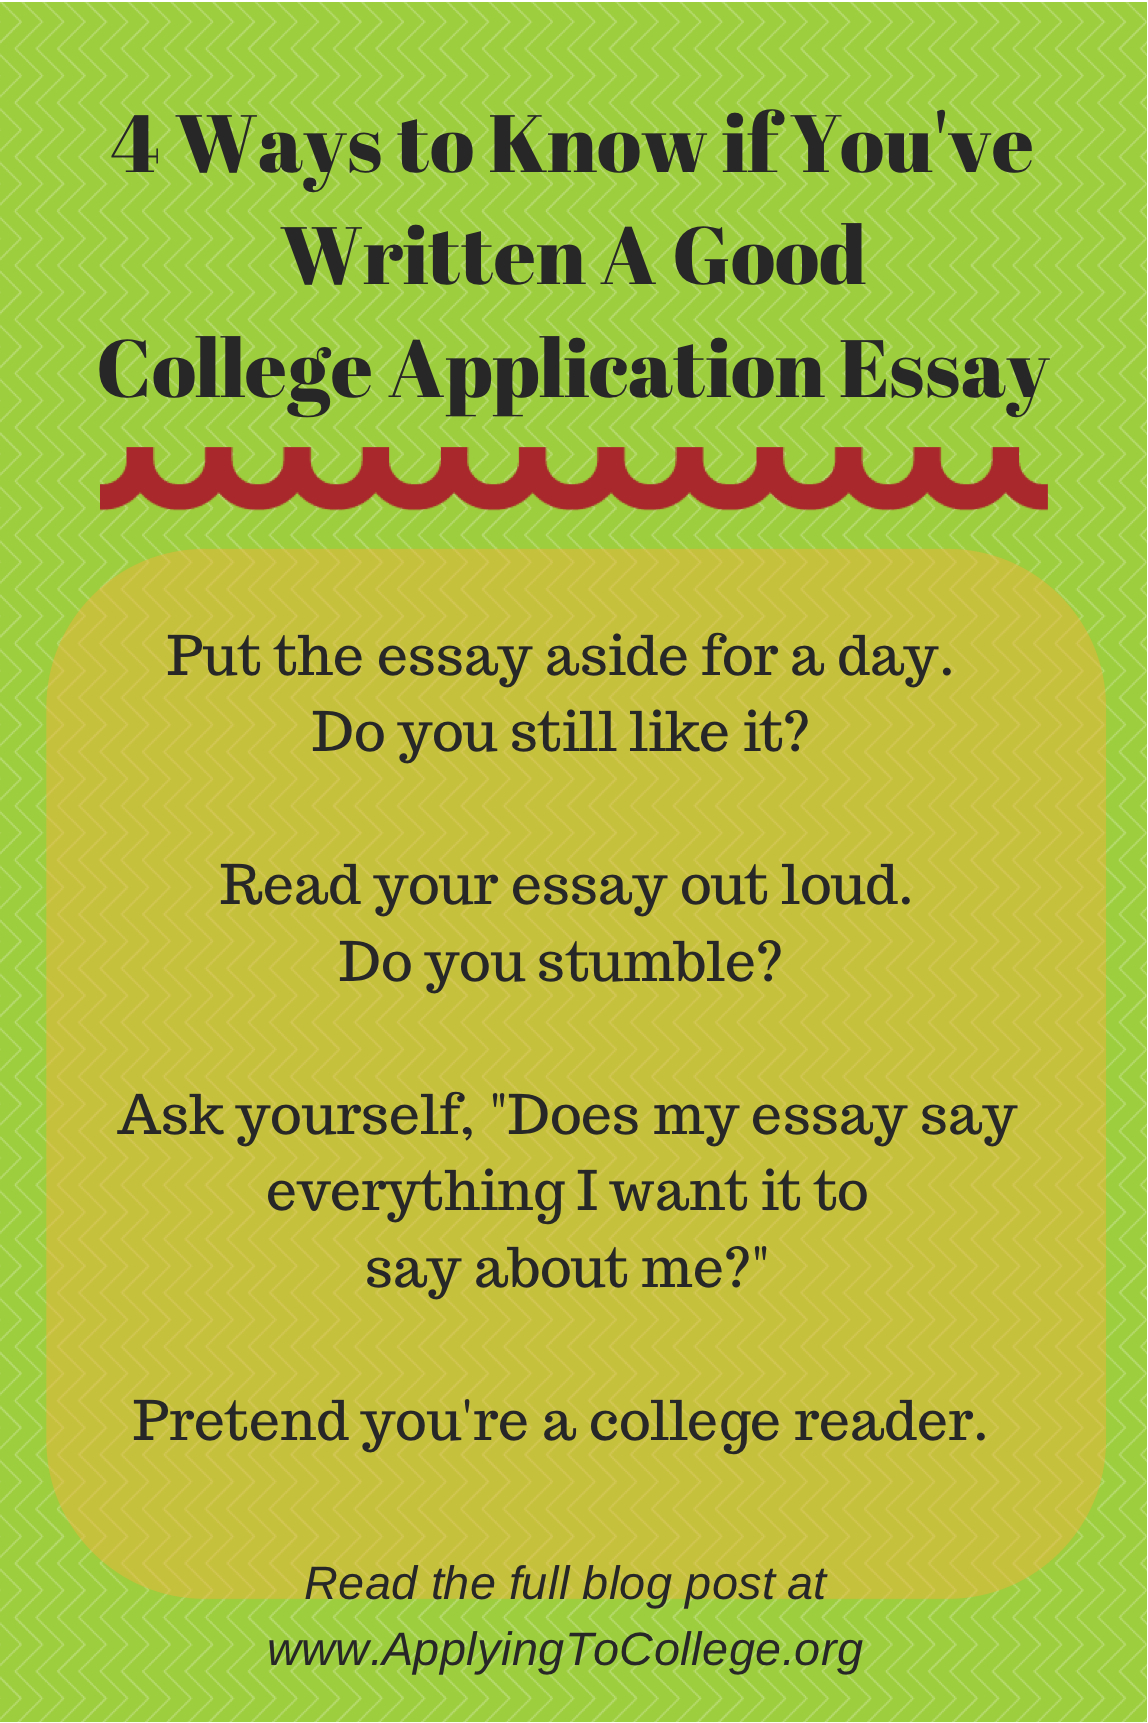 Writing college admission essays college application essay com